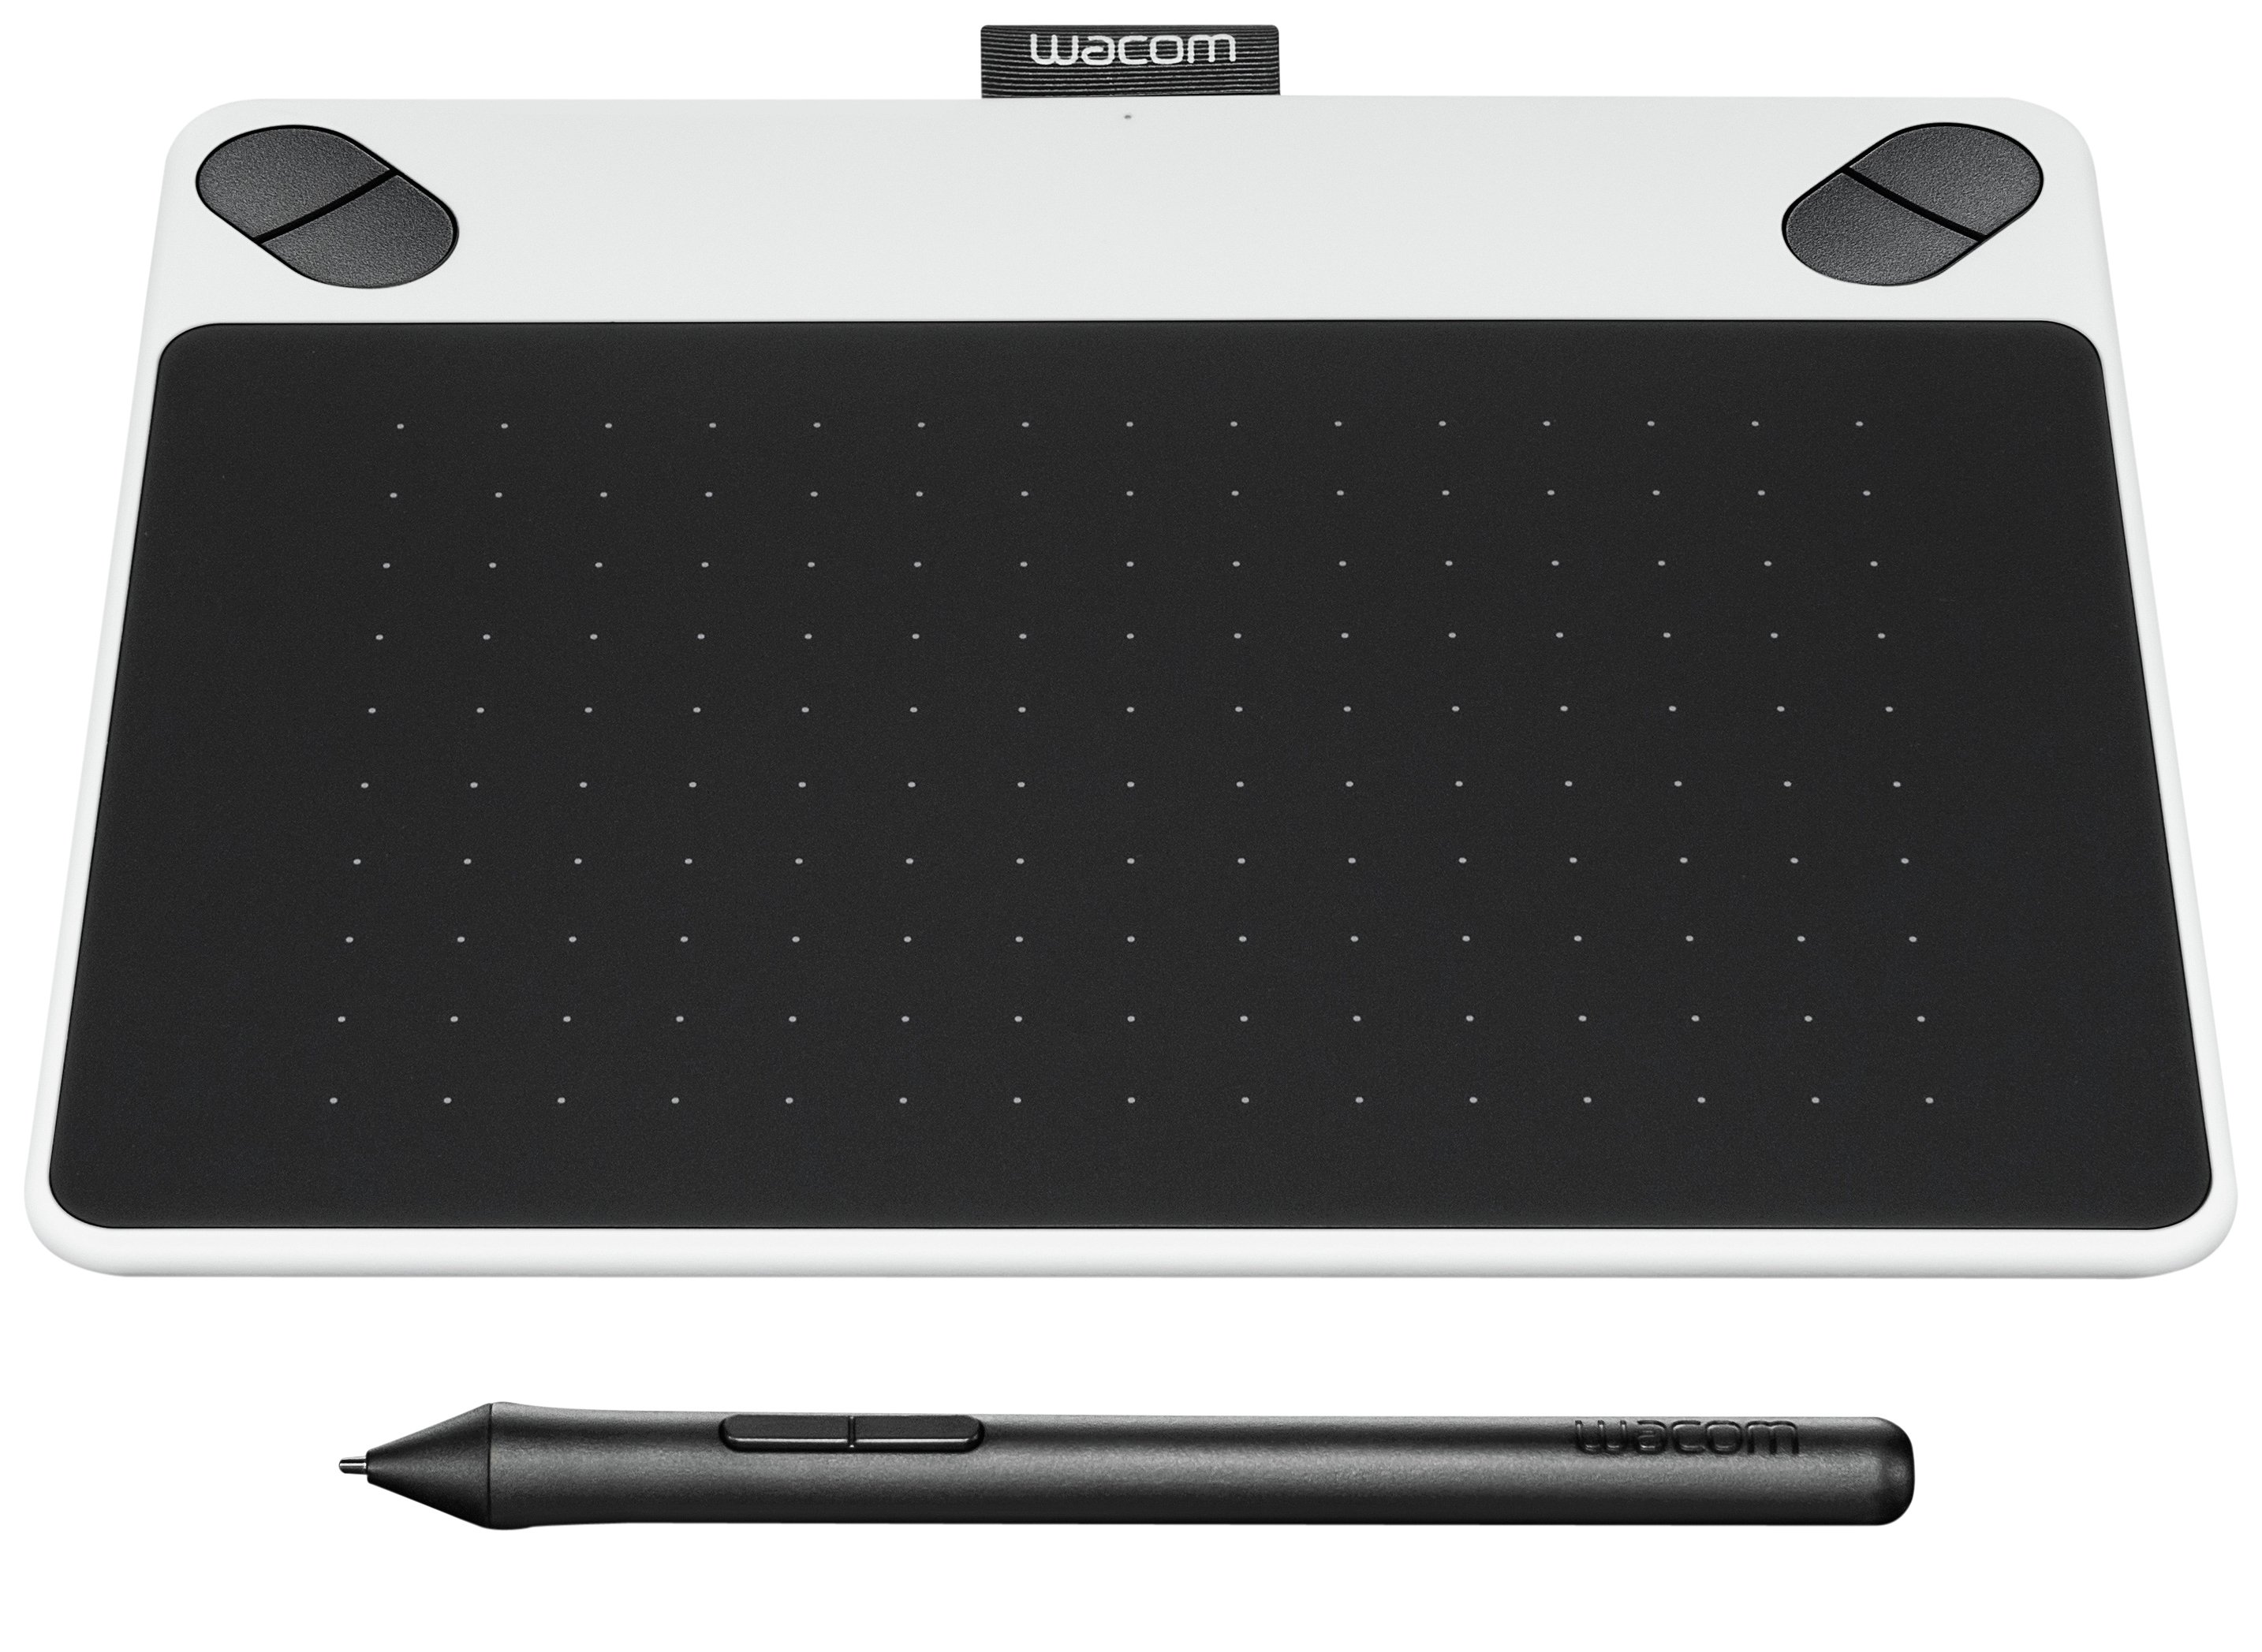 intuos-draw-pen-tablet-small-white